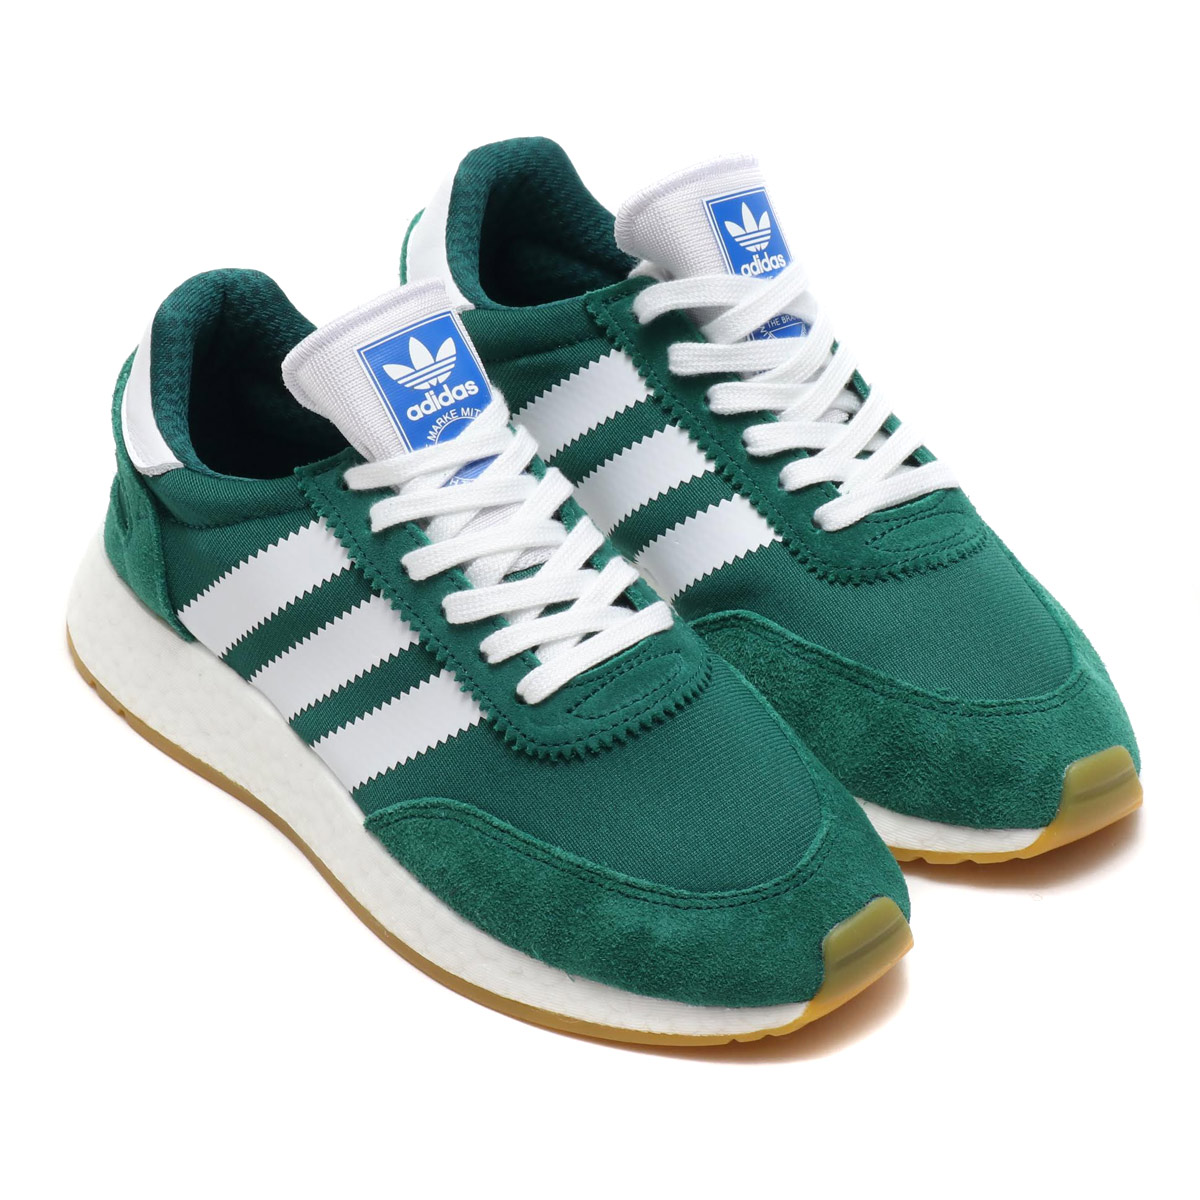 adidas Originals I-5923 W (アディダスオリジナルス I-5923 W)COLLEGEATE GREEN/RUNNING WHITE/GUM【レディース スニーカー】19SS-I